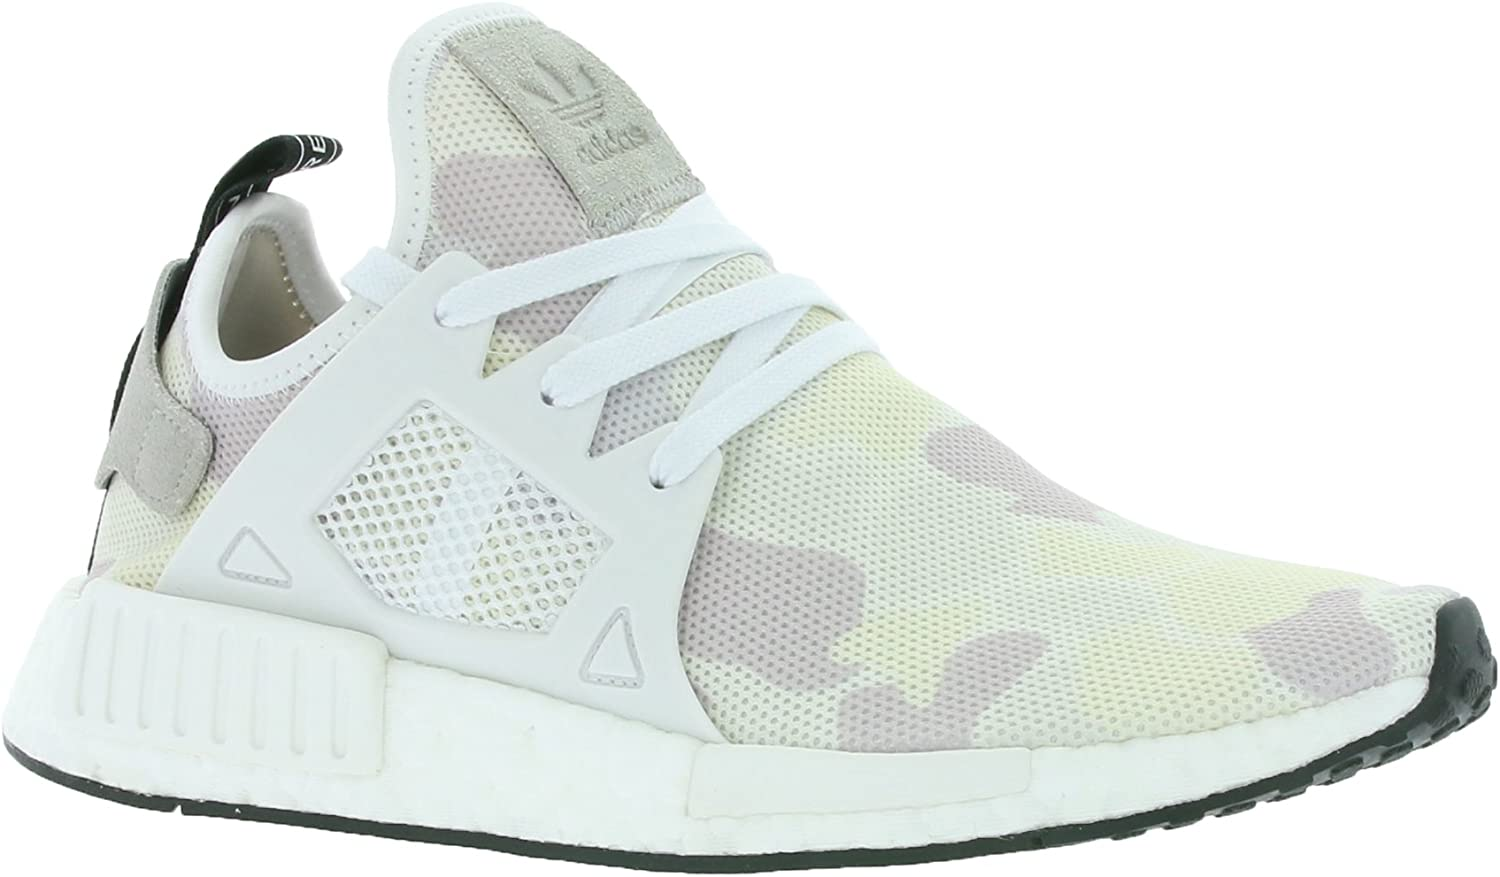 : Adidas NMD XR1 BA723 (8, White Camo): Shoes